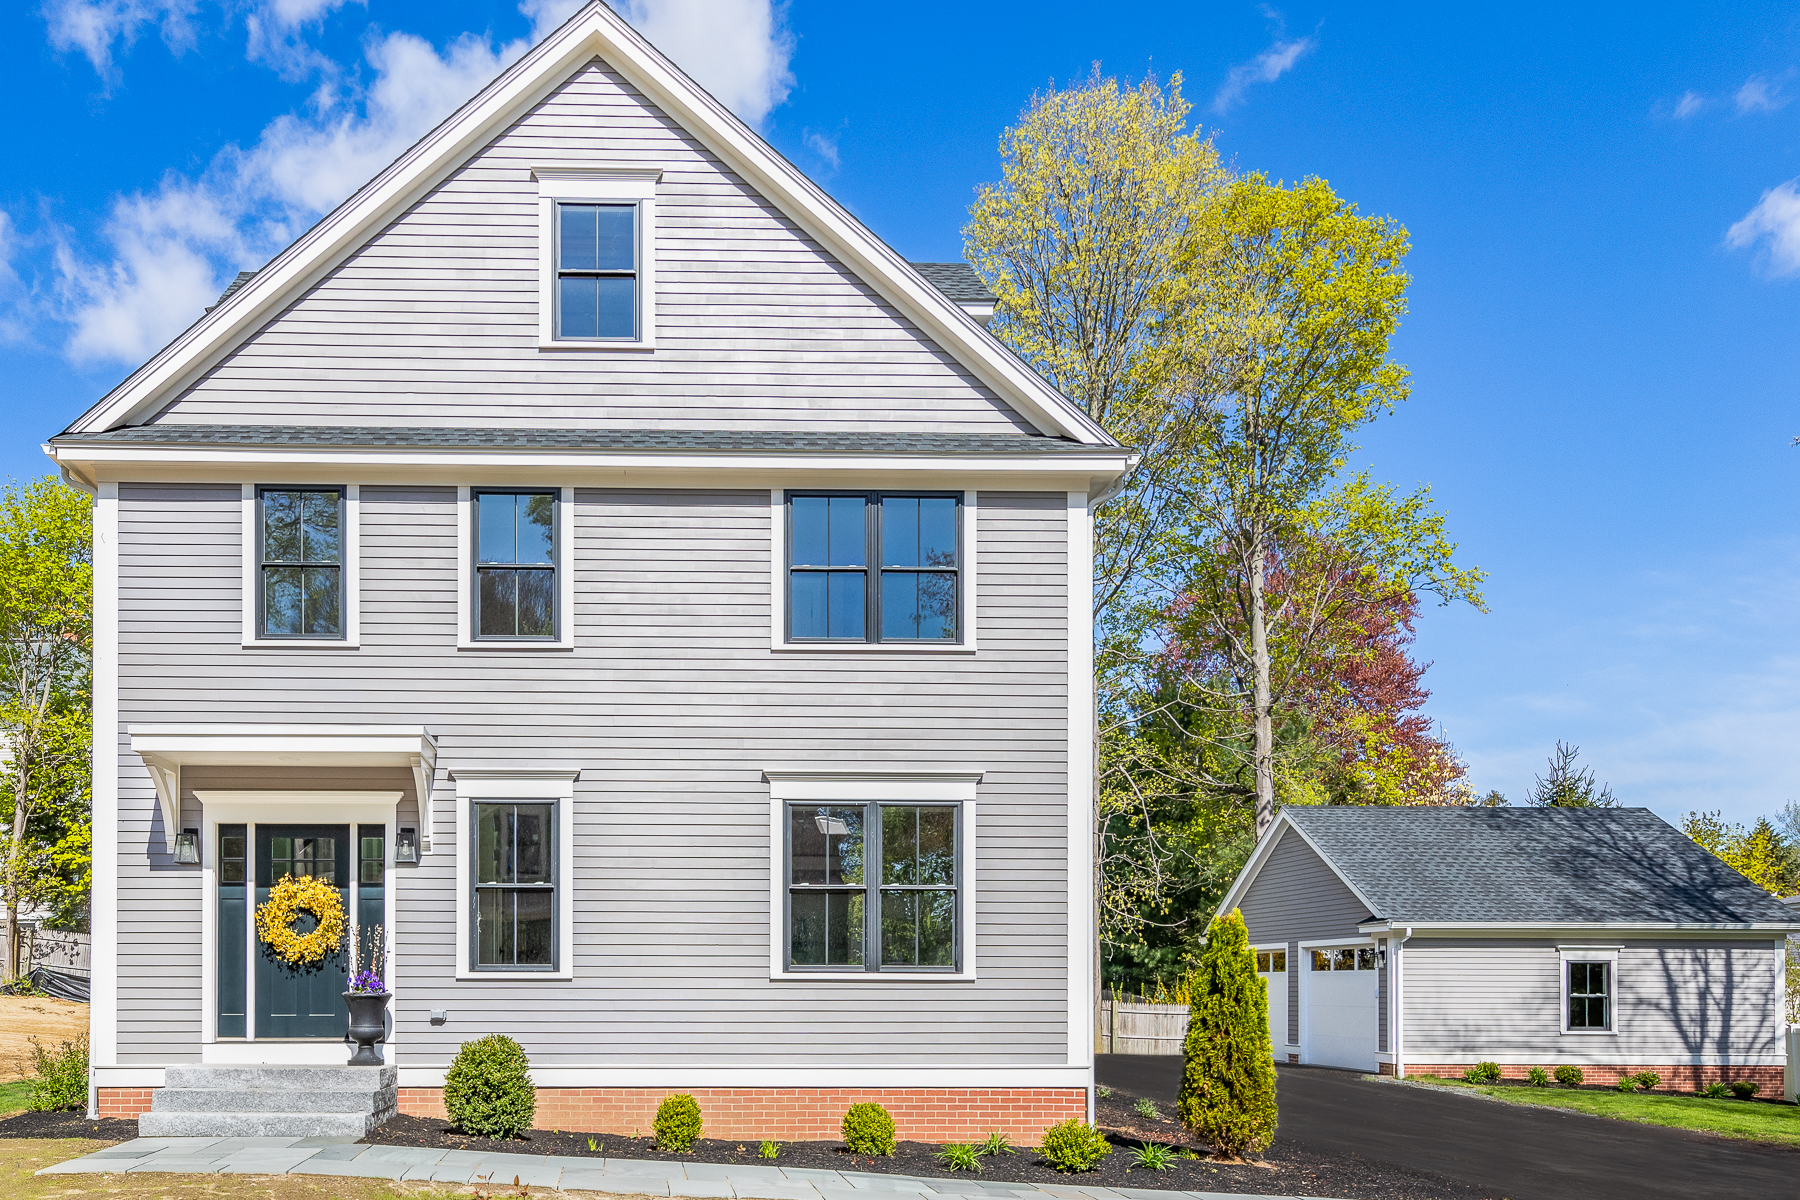 Single Family Home for Active at New construction close to waterfront and downtown! 2 Hamilton Way (GPS 223 High Street) Newburyport, Massachusetts 01950 United States